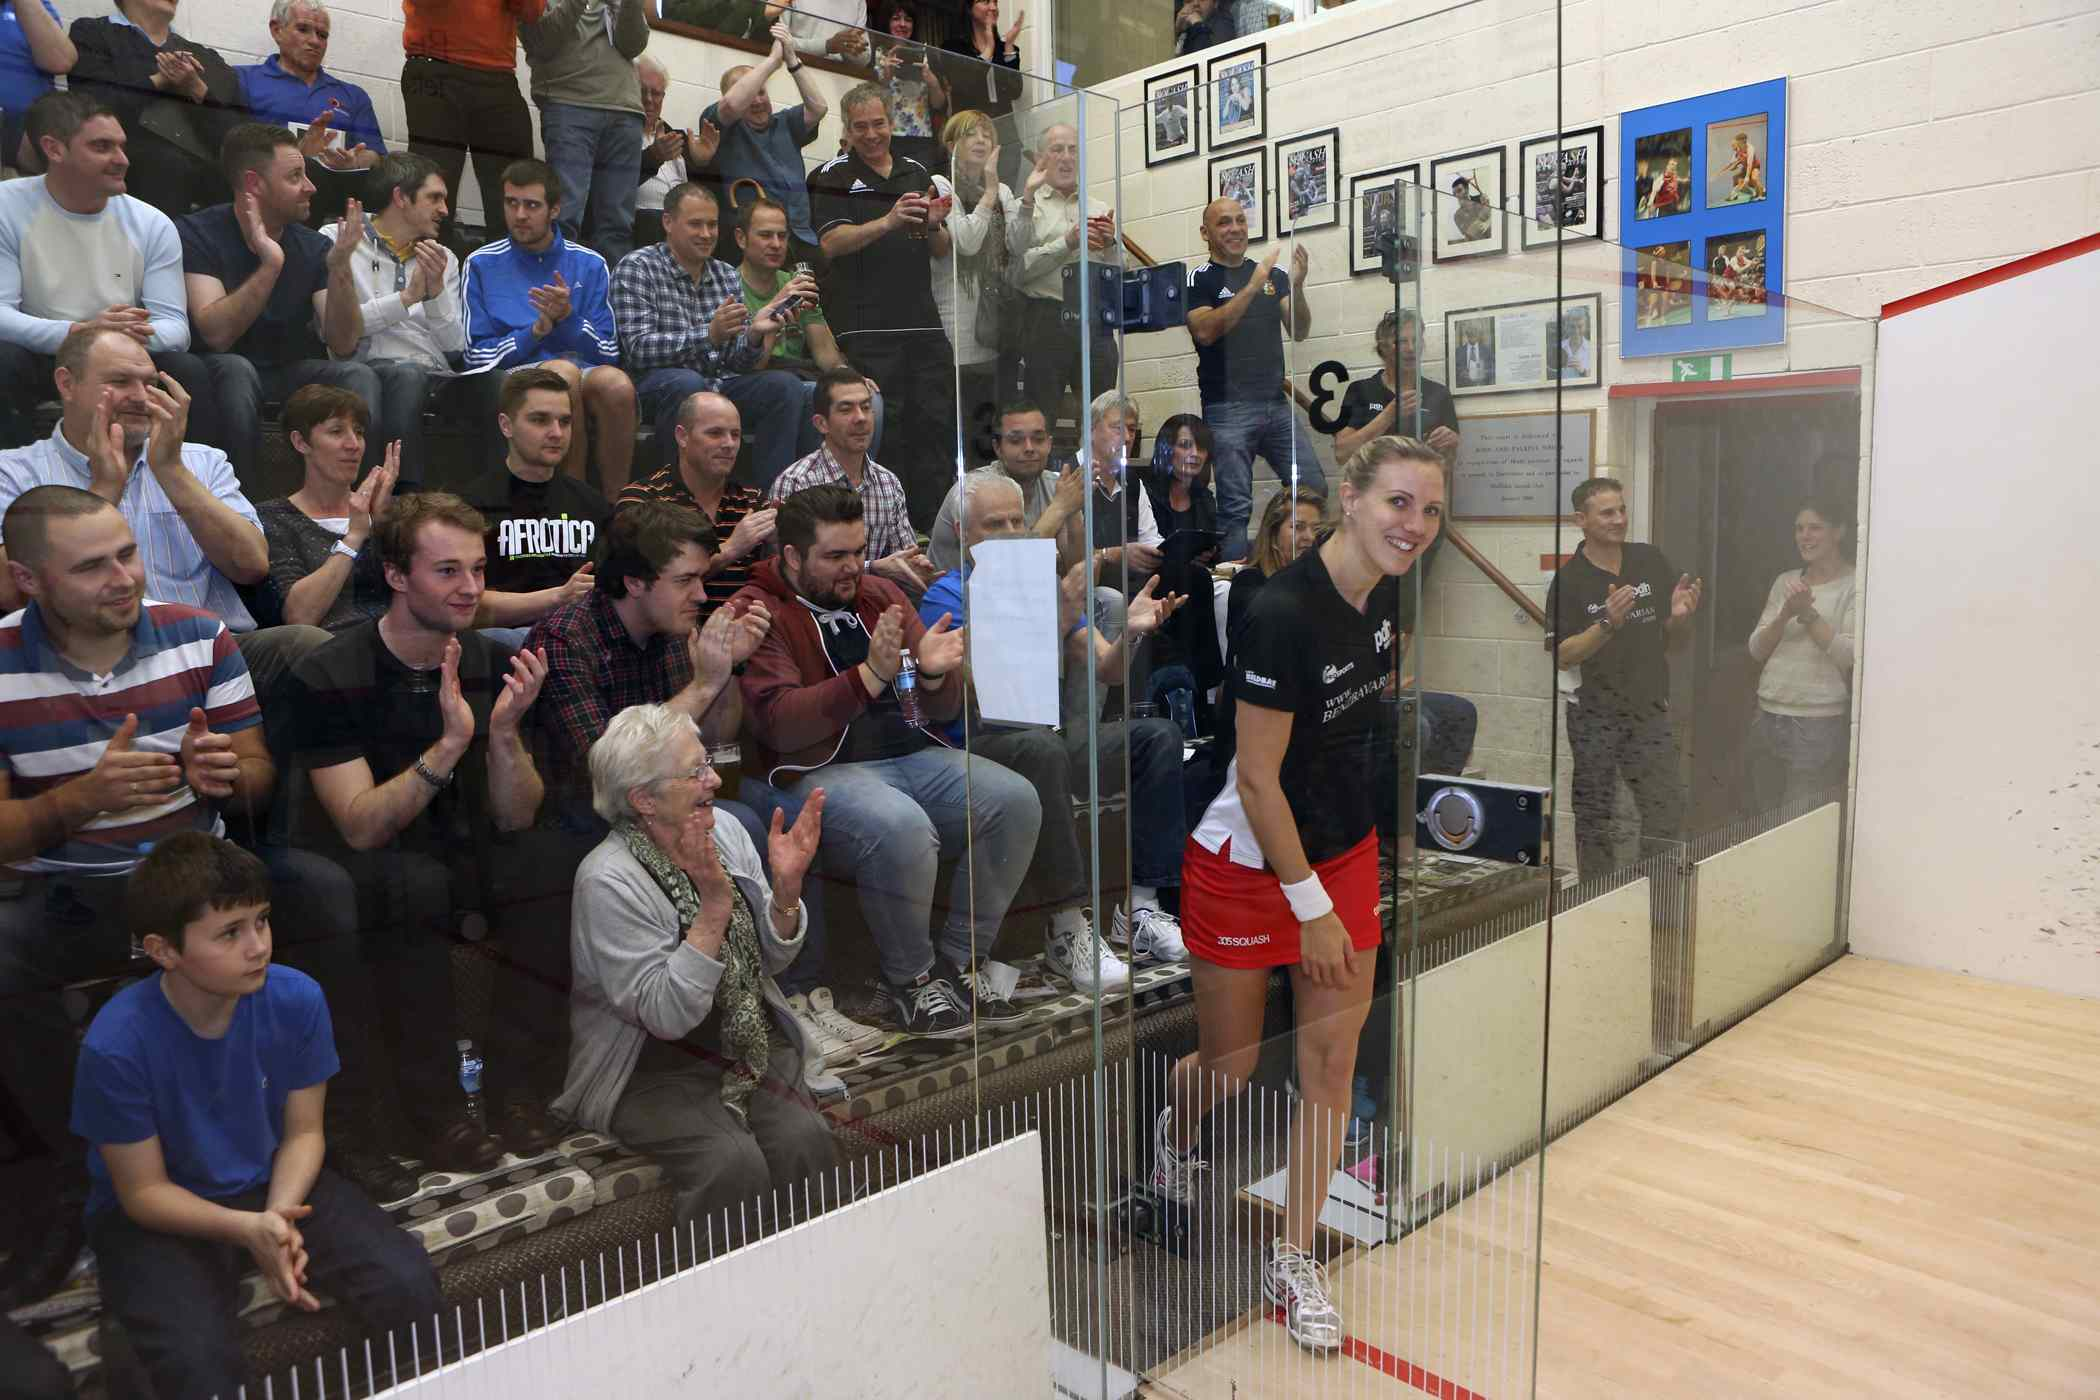 Laura shows off trophy at Duffield